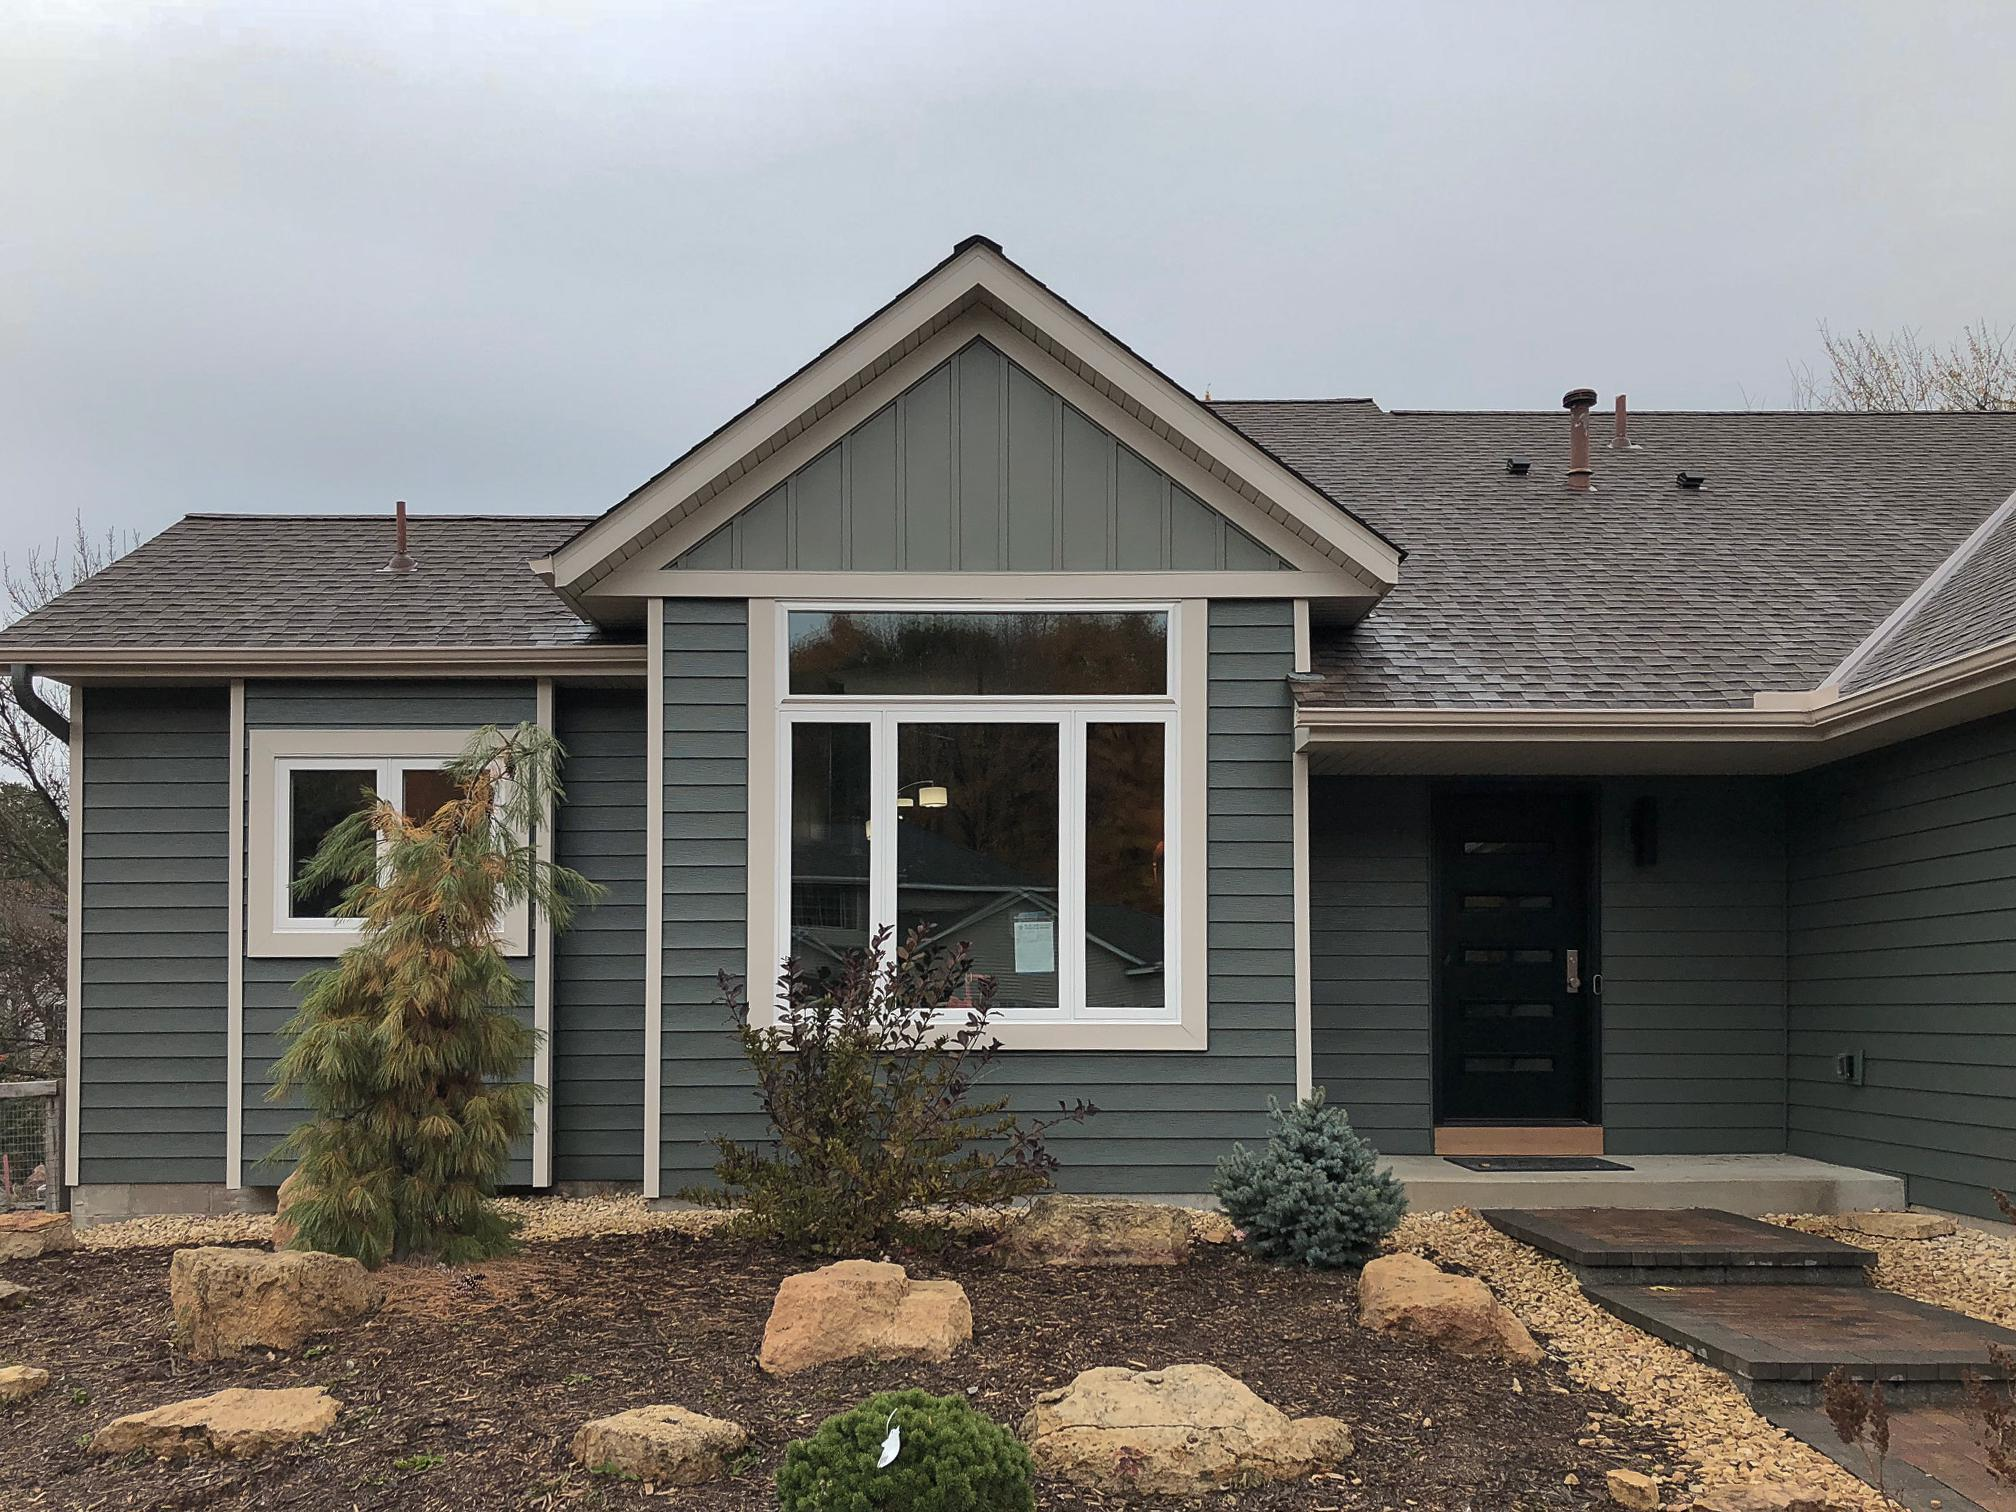 The homeowners of this rambler home in the Twin Cities chose EDCO's Traditional Lap Siding in Willow and Board and Batten in Sage to give their new home timeless style.